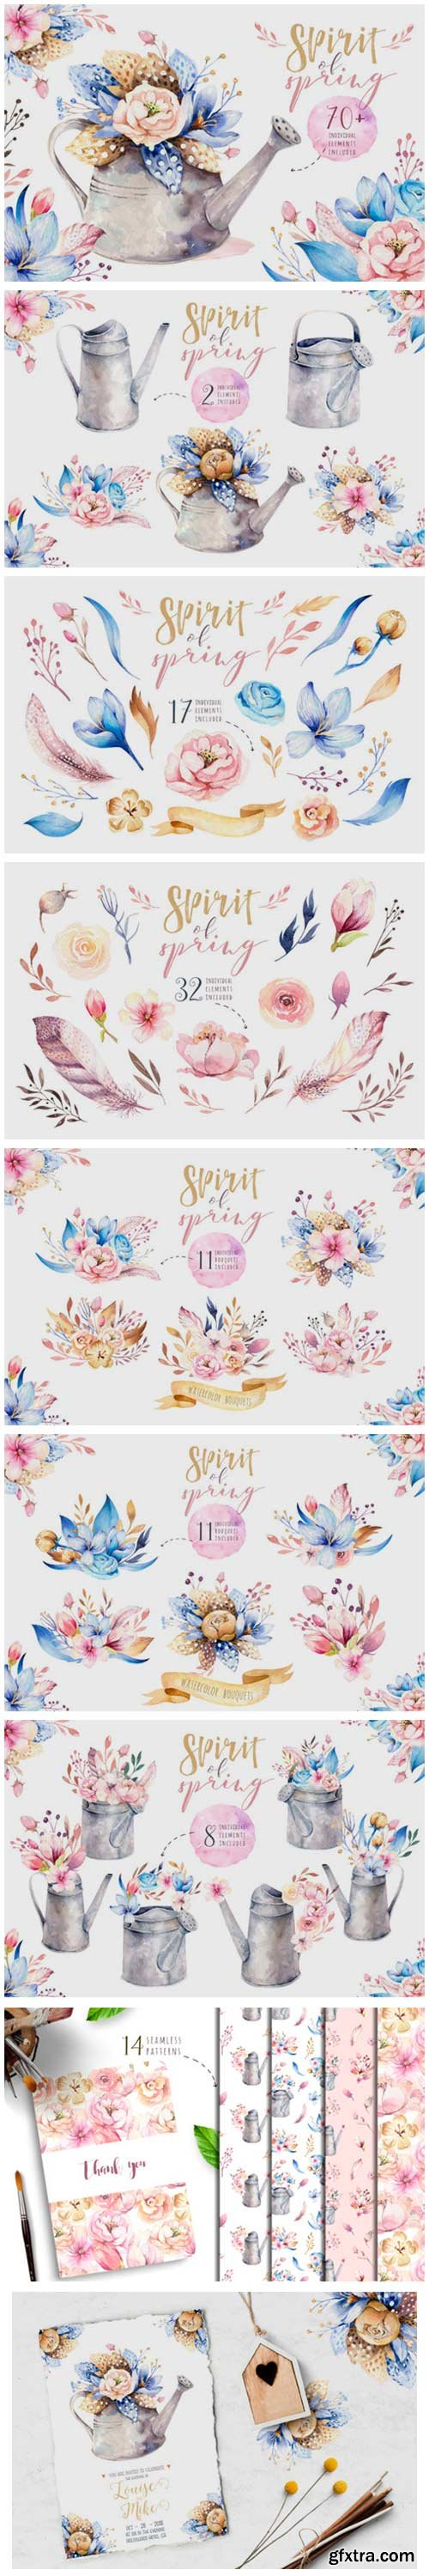 Spirit of Spring. Watercolor Collection 3758784